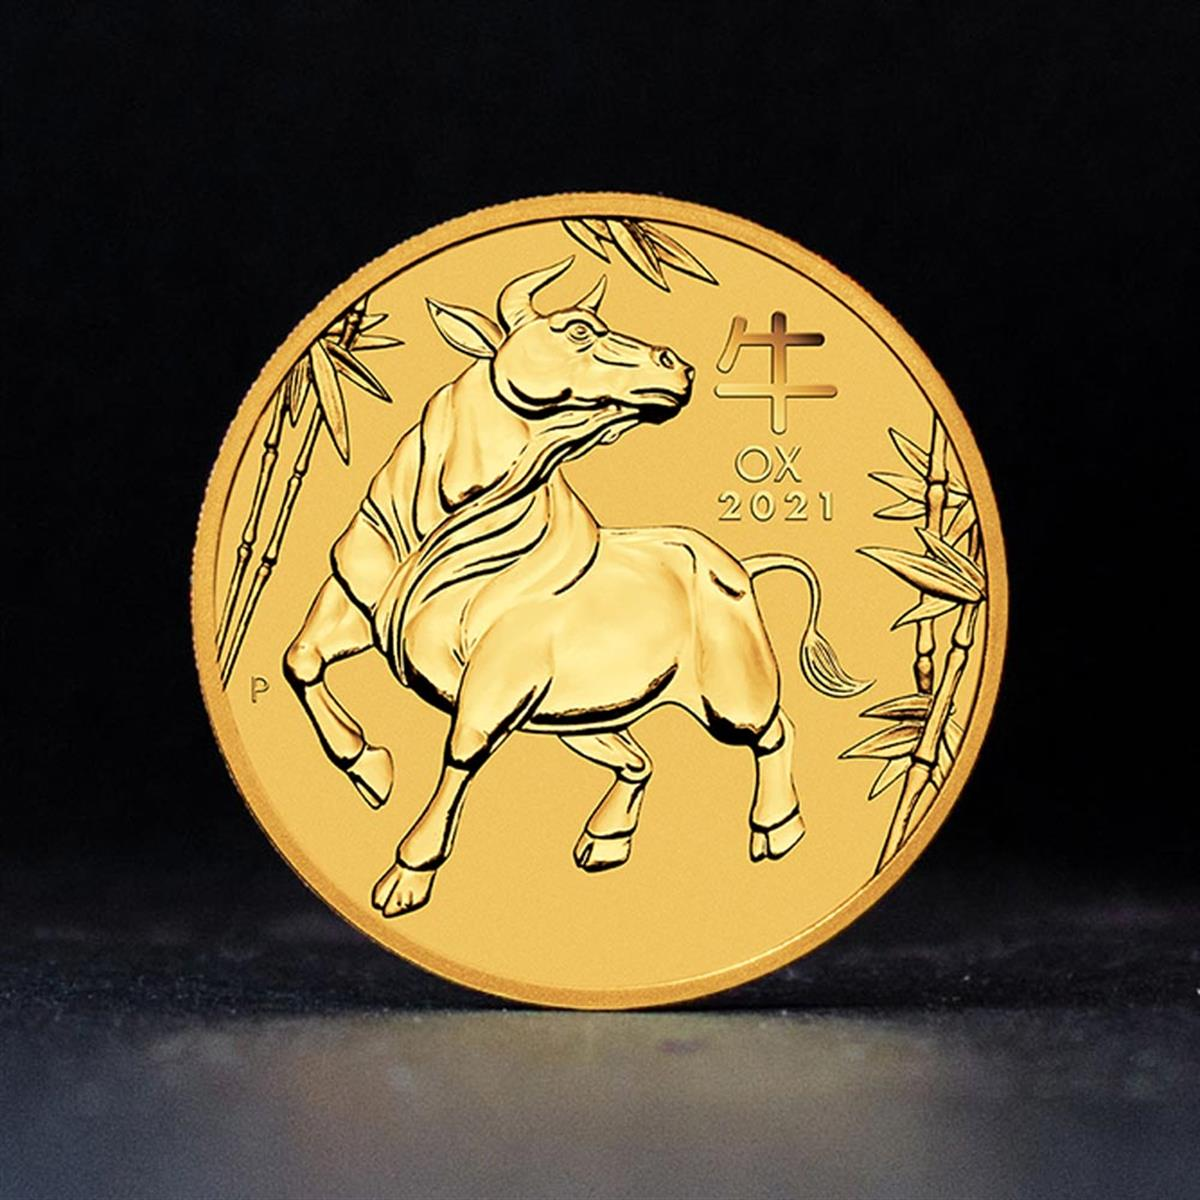 1/10 oz Gold Coin 2021 Year of the Ox - Perth Mint